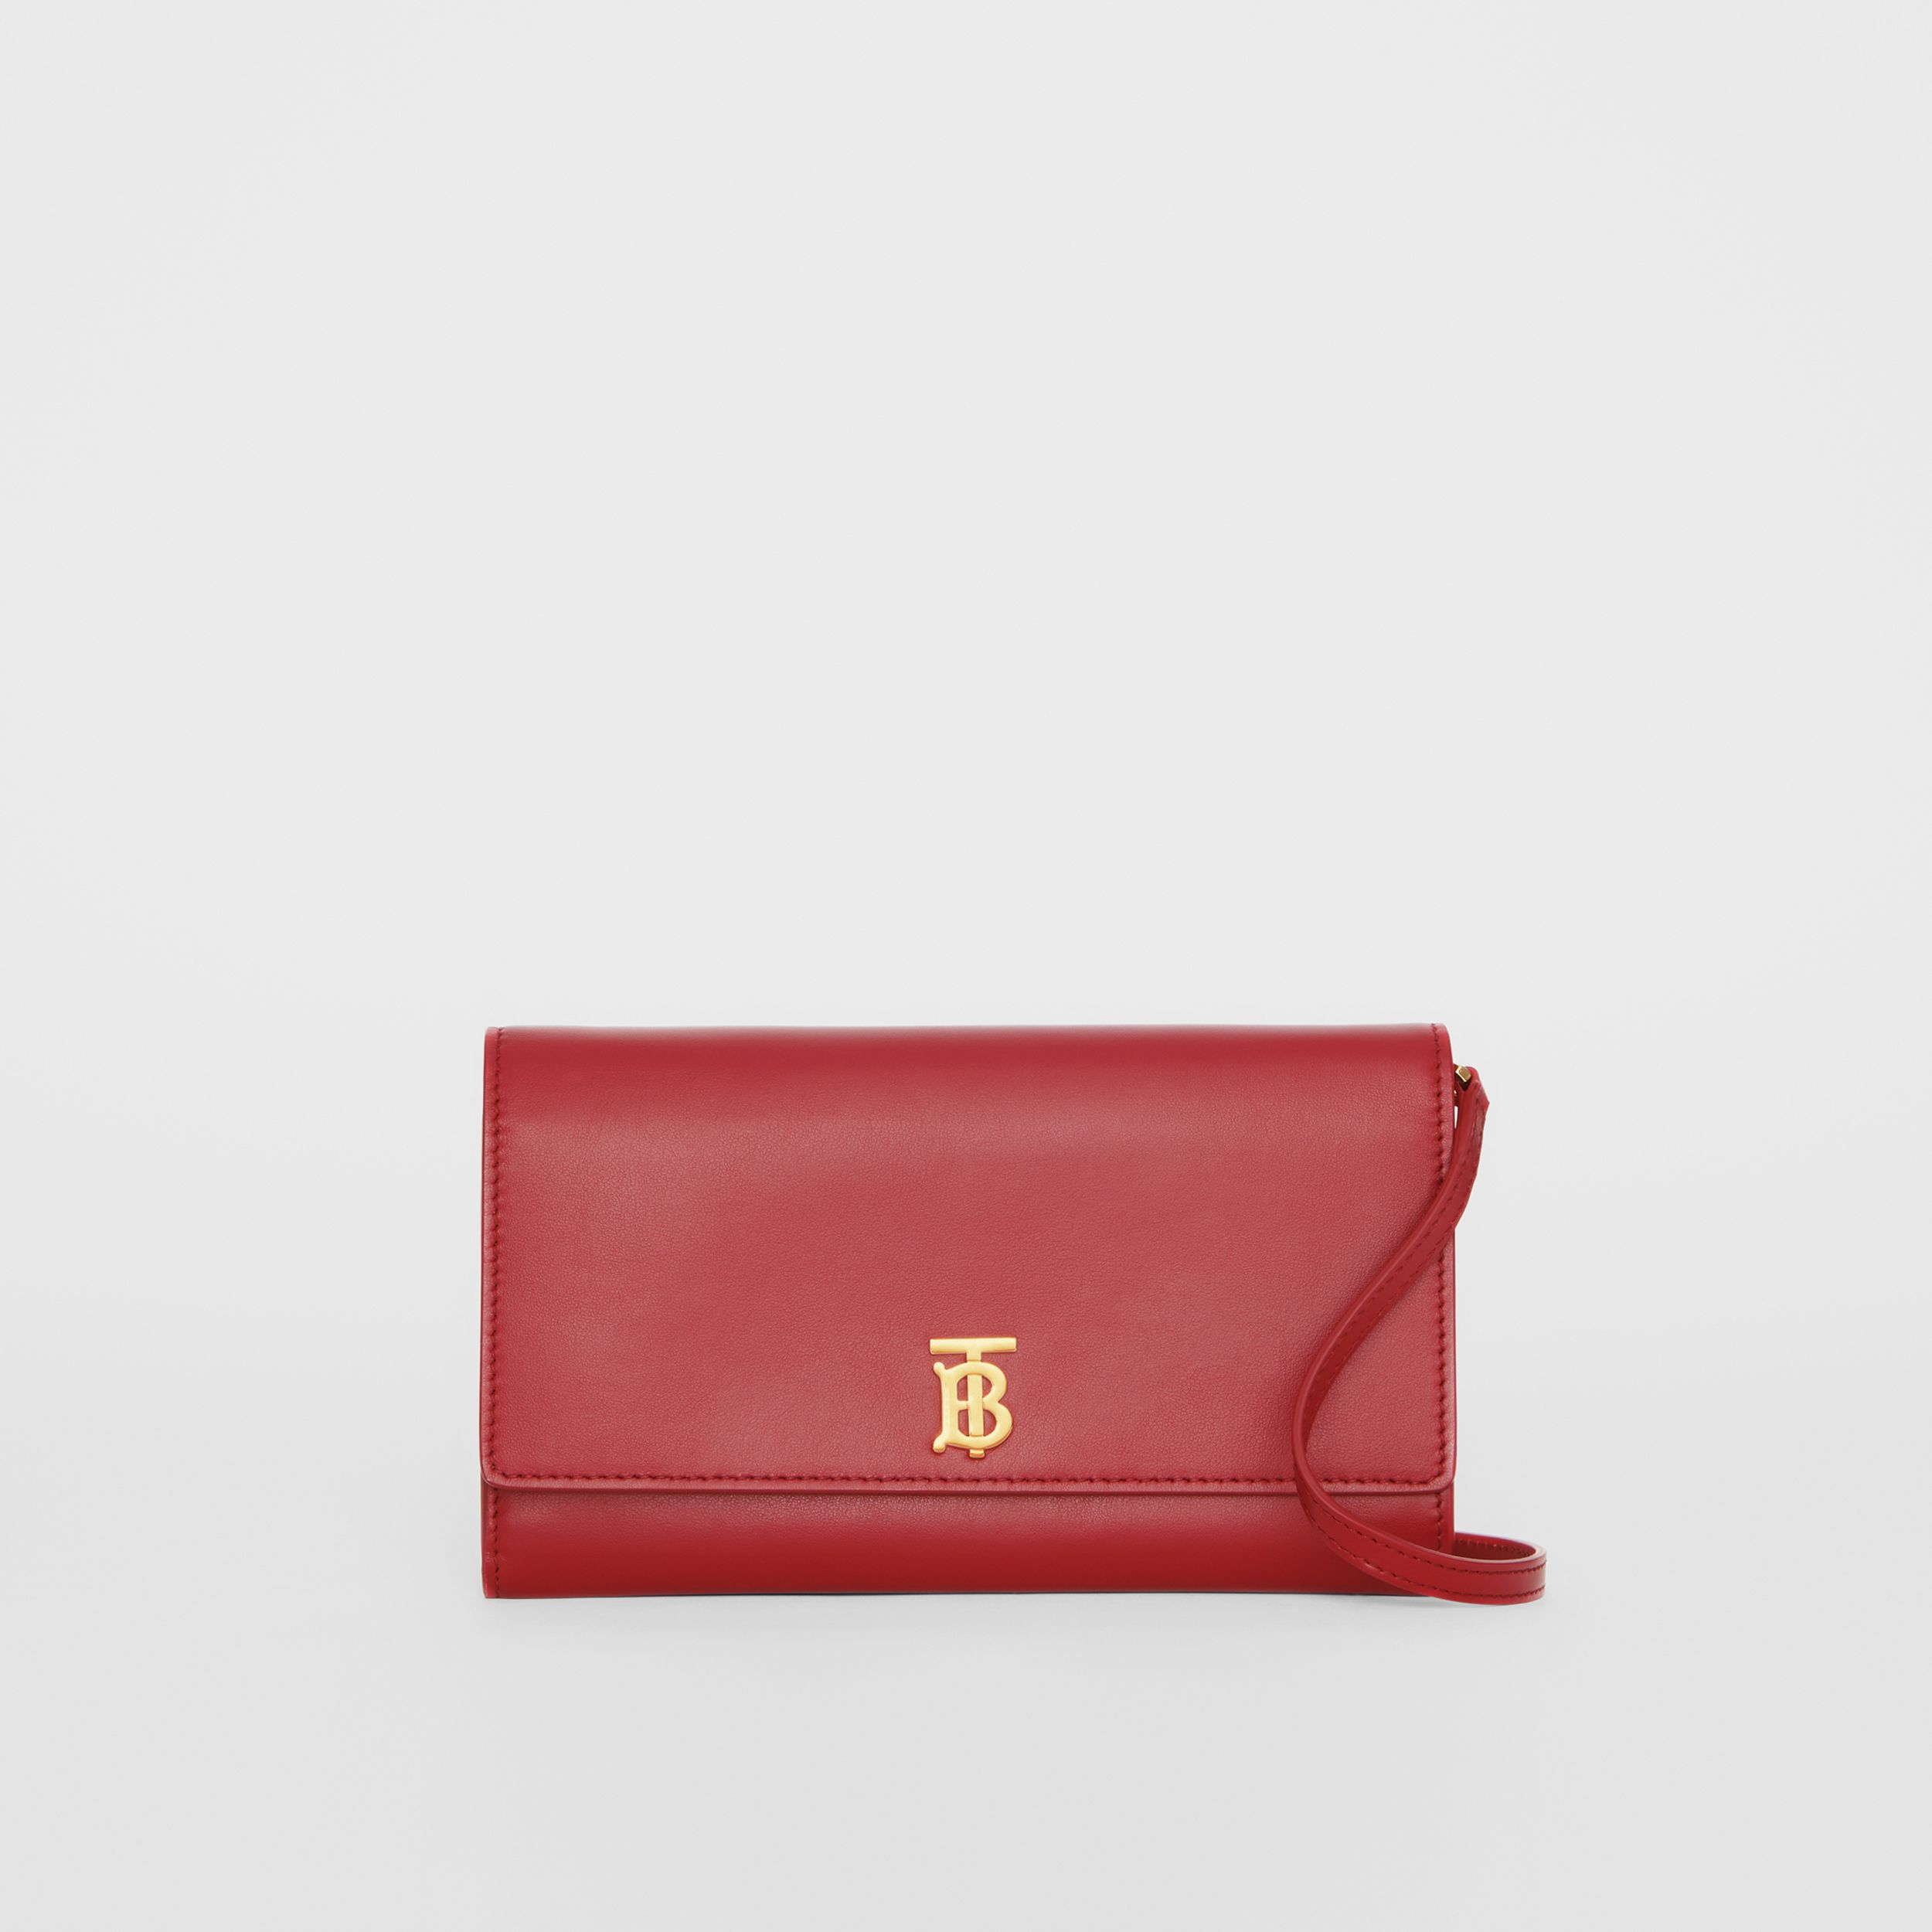 Monogram Motif Leather Wallet with Detachable Strap in Crimson - Women | Burberry - 1